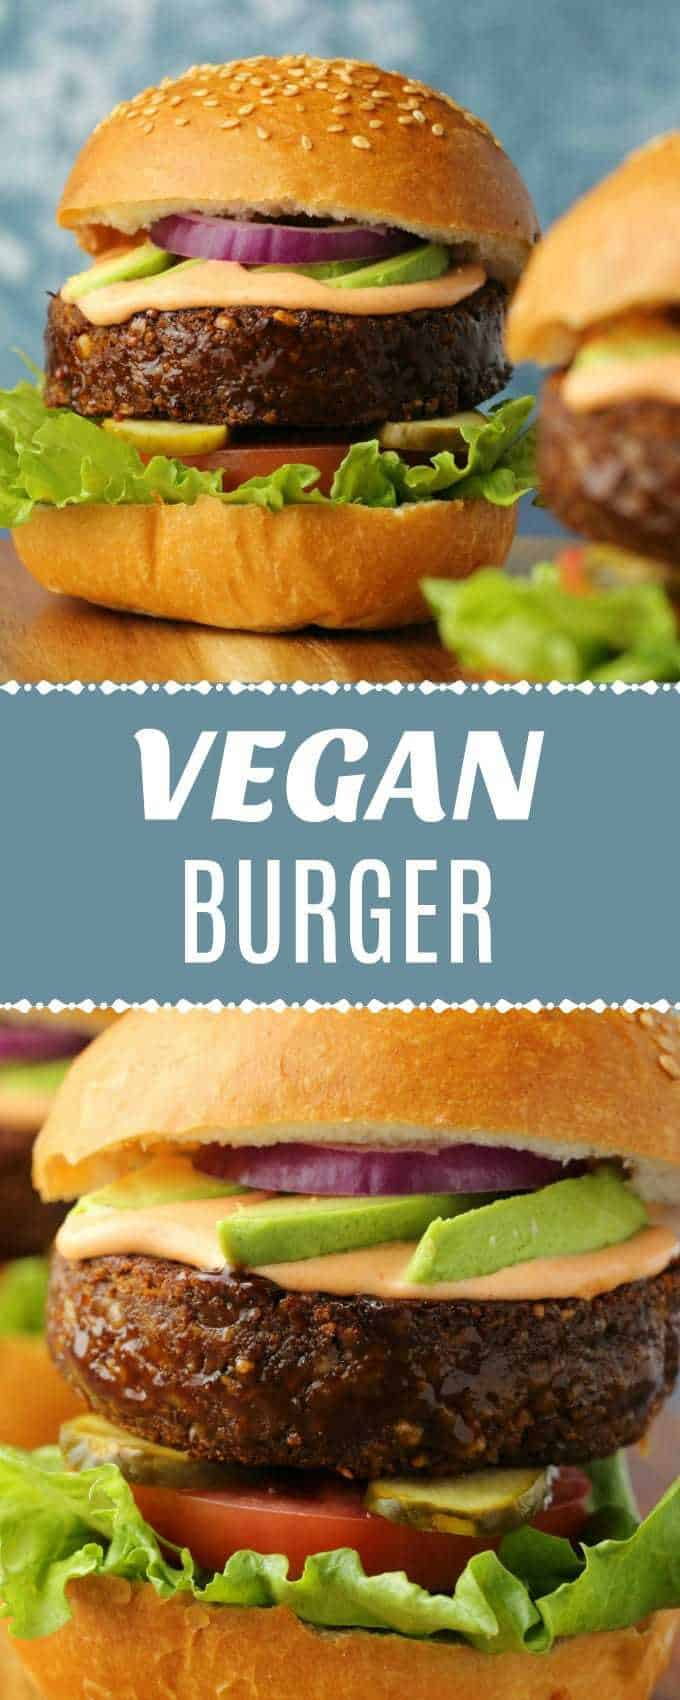 Super hearty vegan burger! Perfectly grillable, highly flavorful and extremely satisfying, this is a burger that vegans and non-vegans alike will enjoy!| lovingitvegan.com